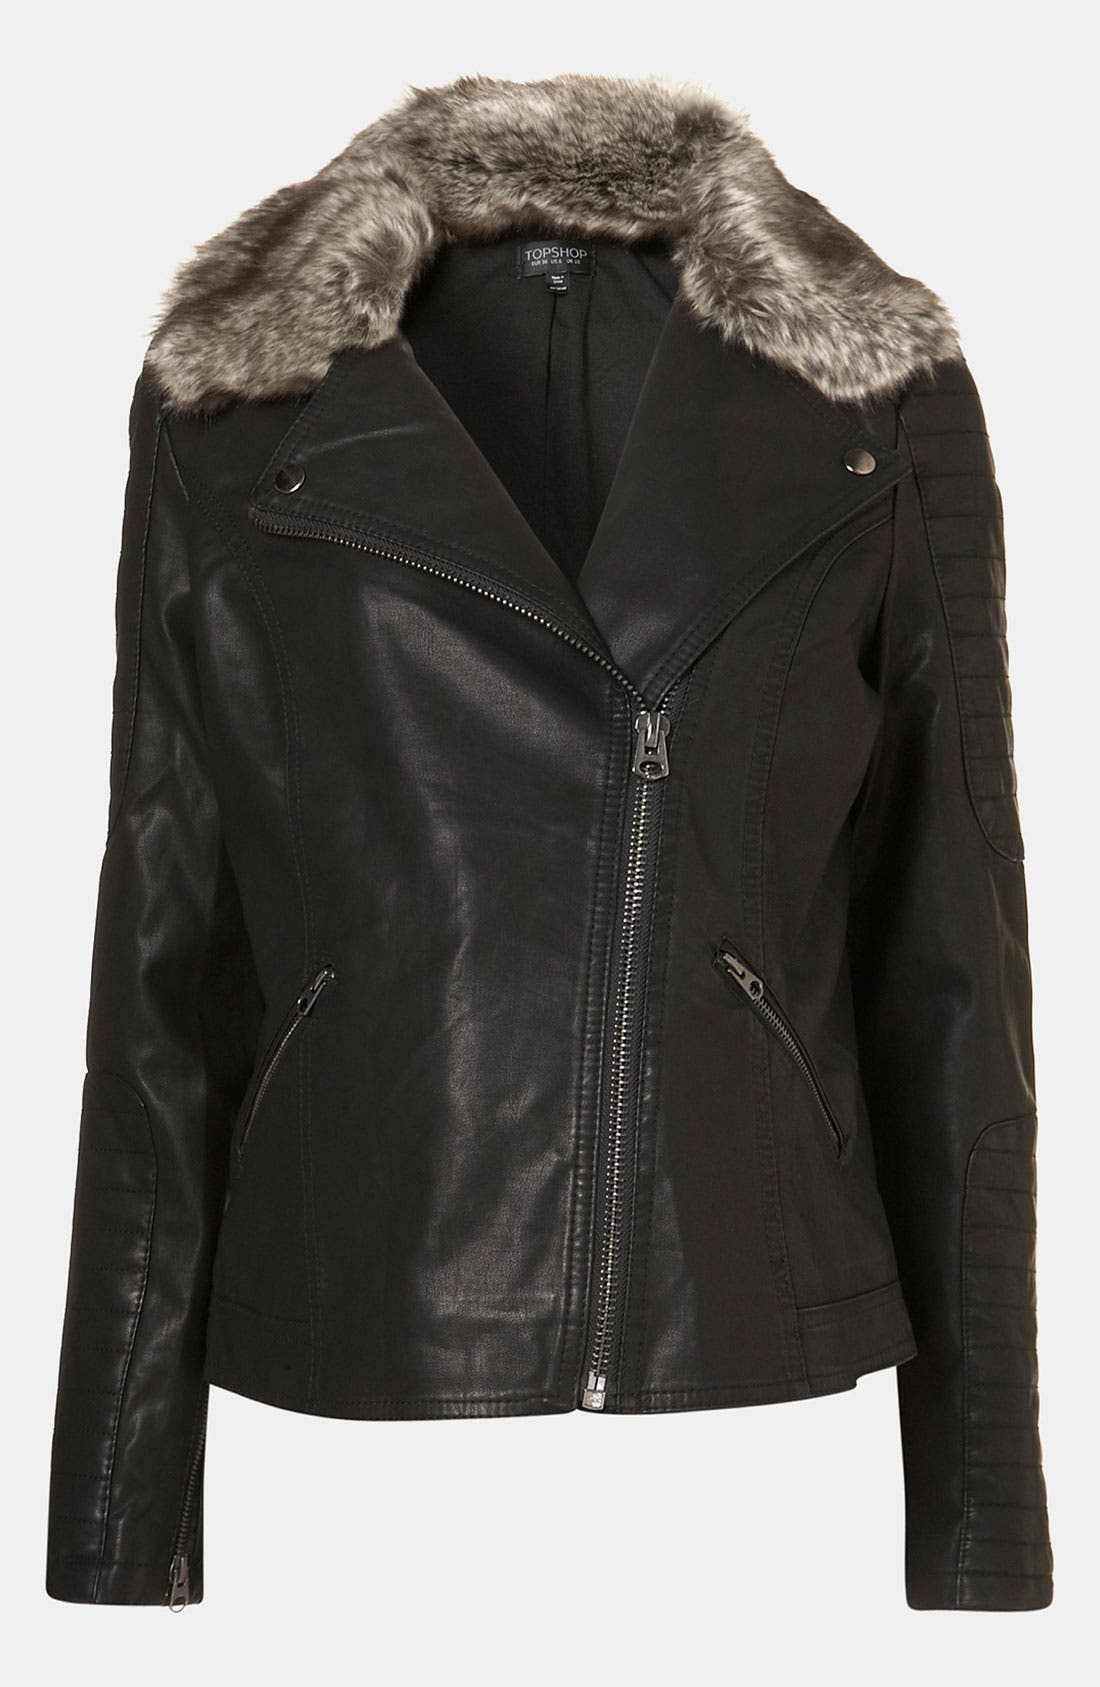 Alternate Image 1 Selected - Topshop 'Maddox' Faux Leather Maternity Jacket